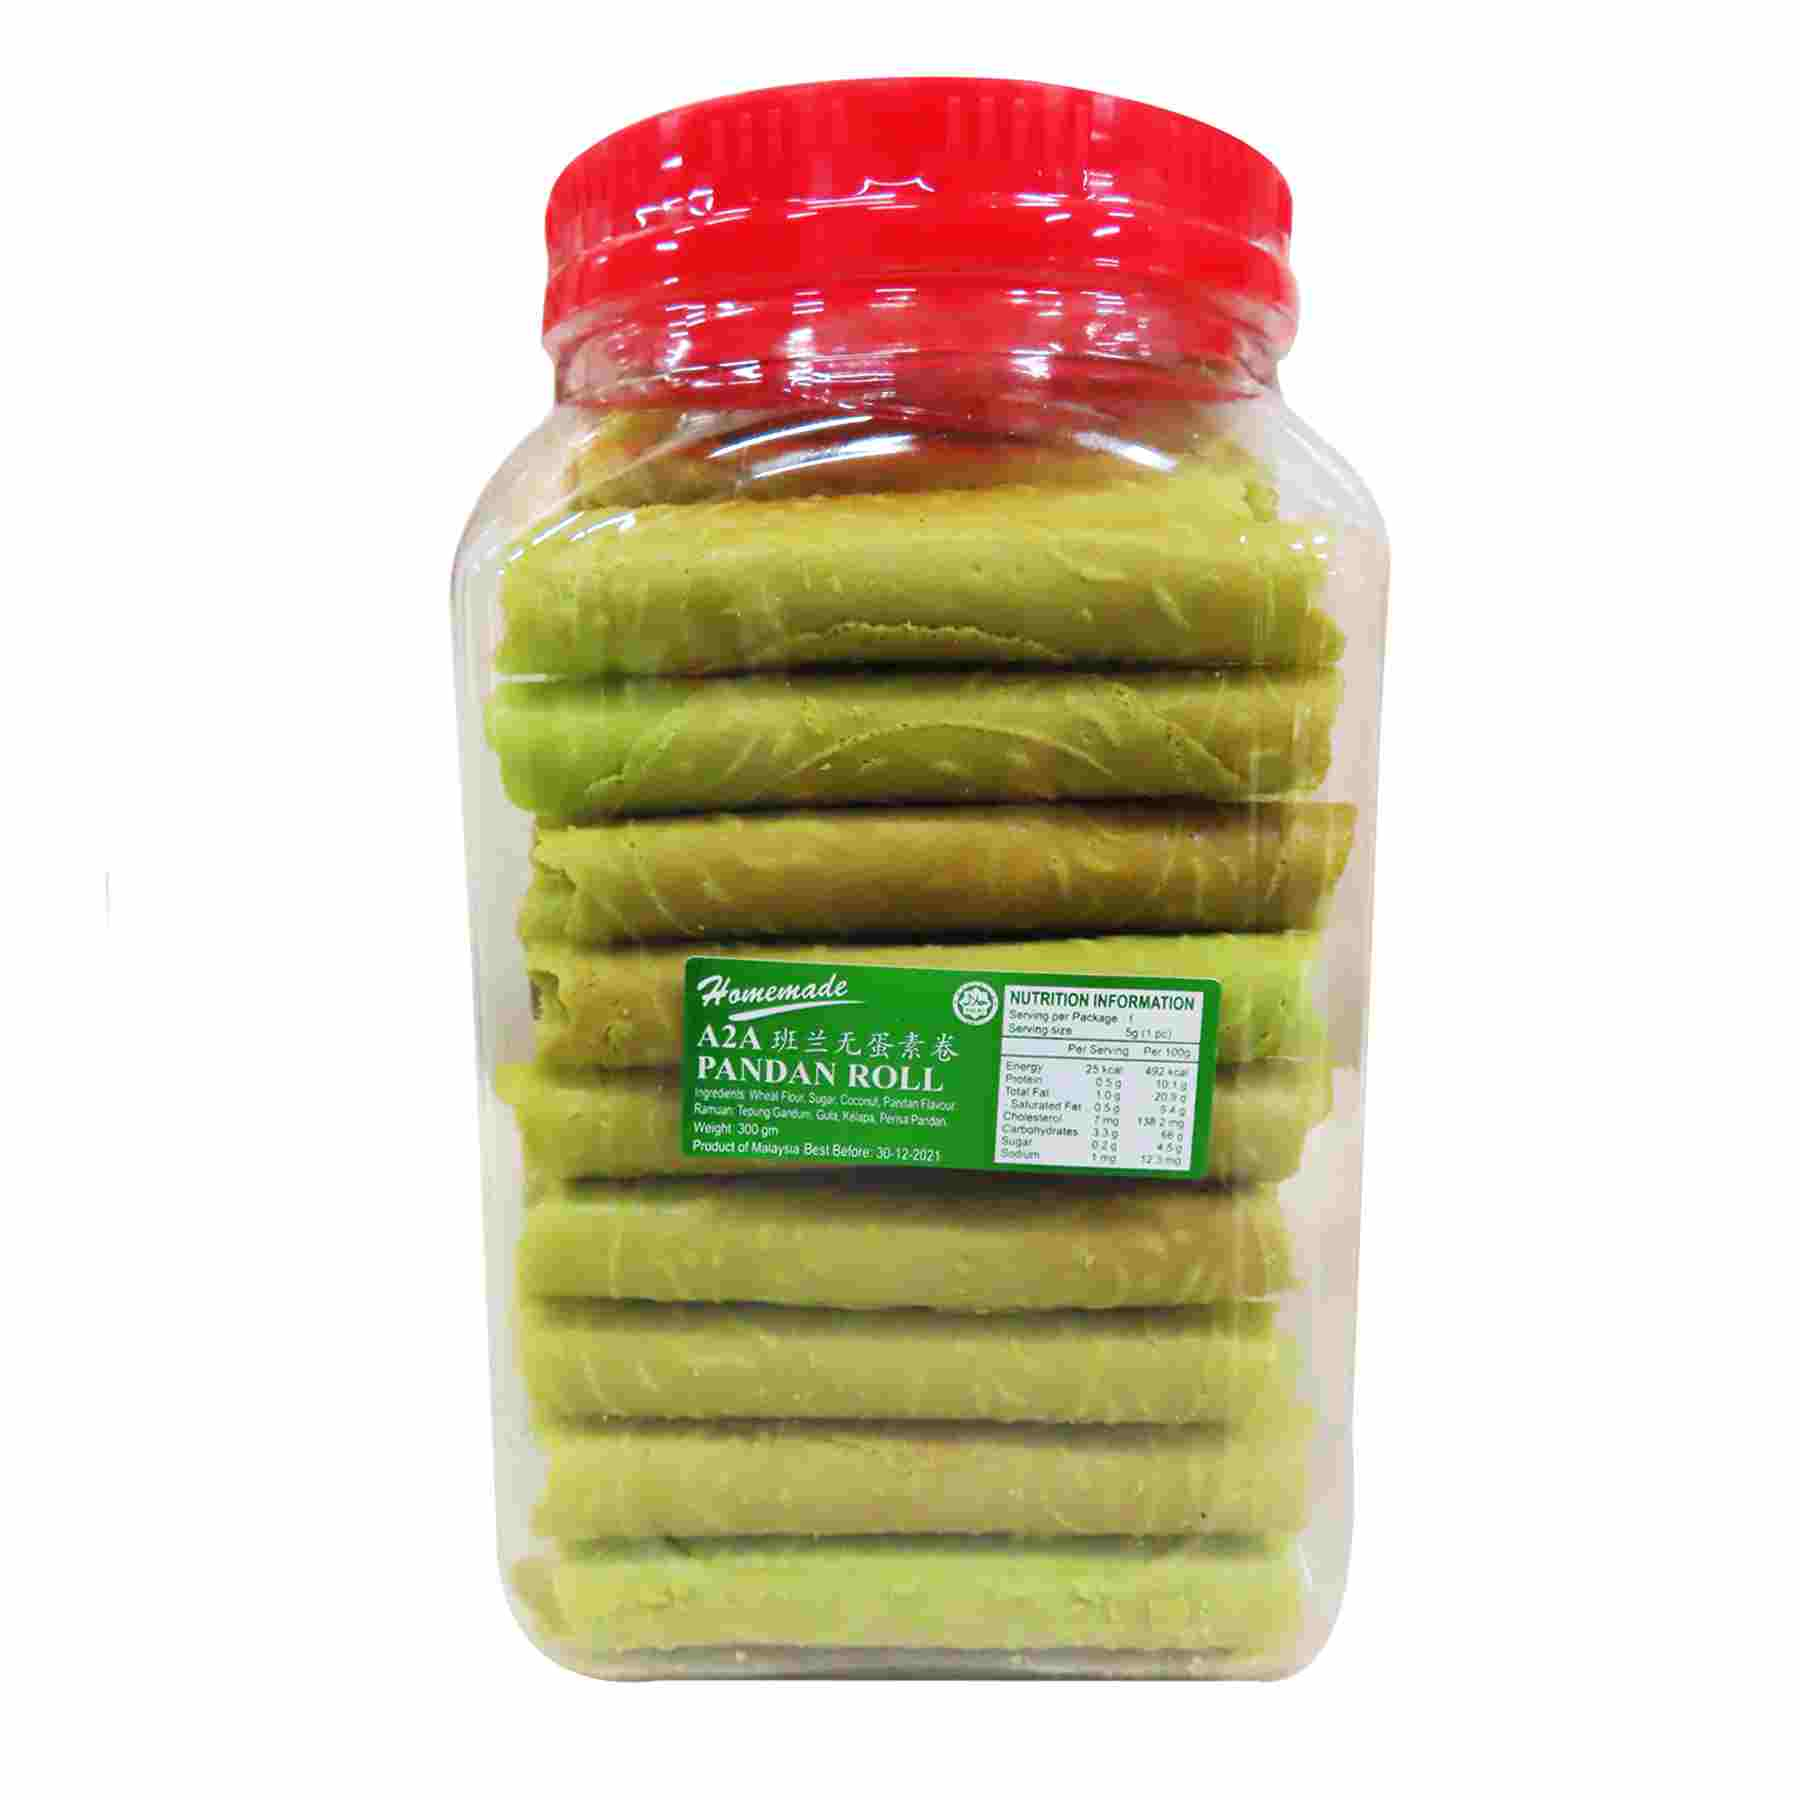 Image Pandan Nyonya Roll eggless love letter A2A 善缘 - 班兰卷 300grams